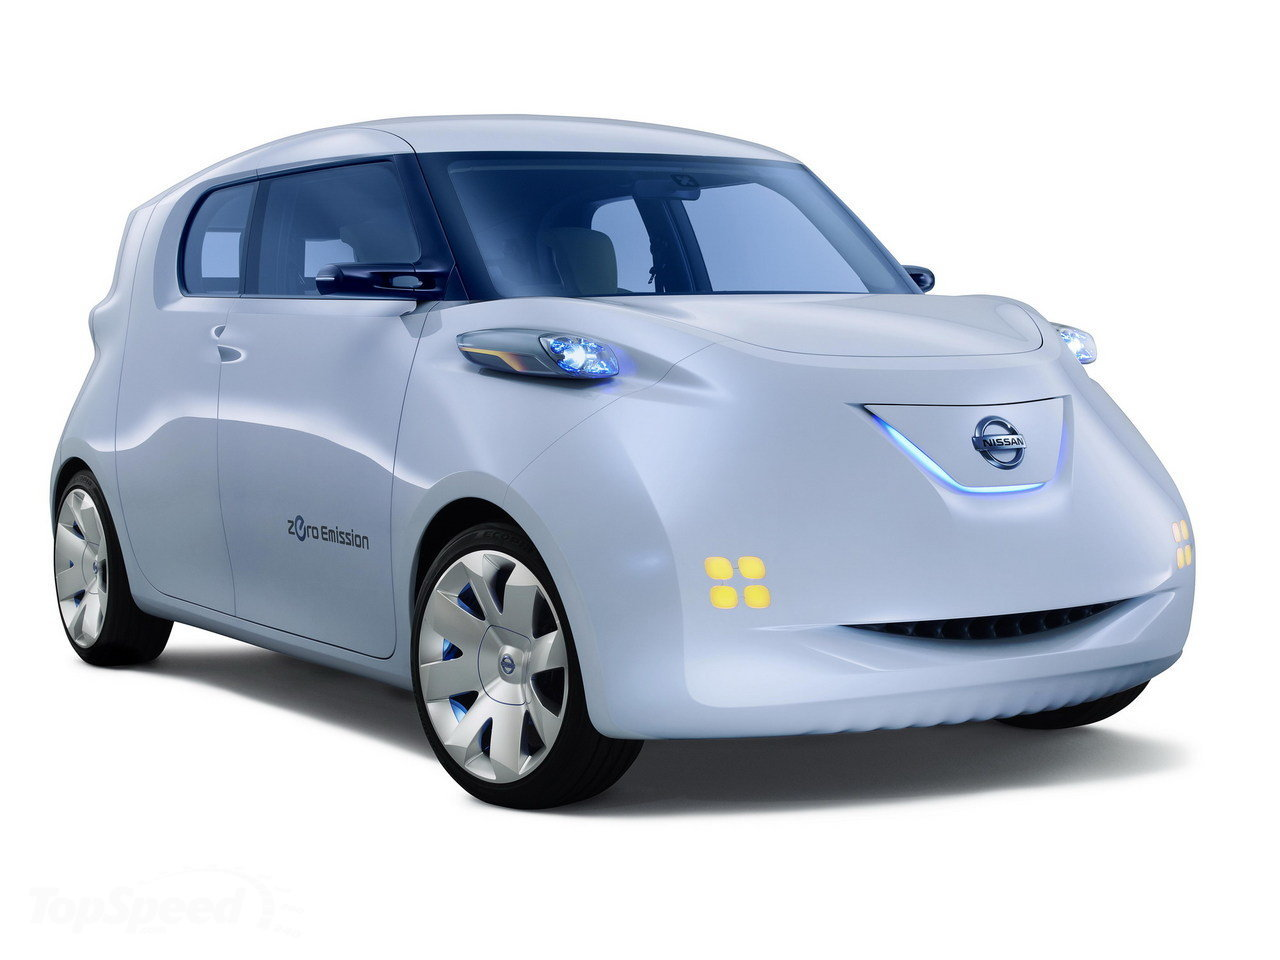 official photo 2011 nissan townpod